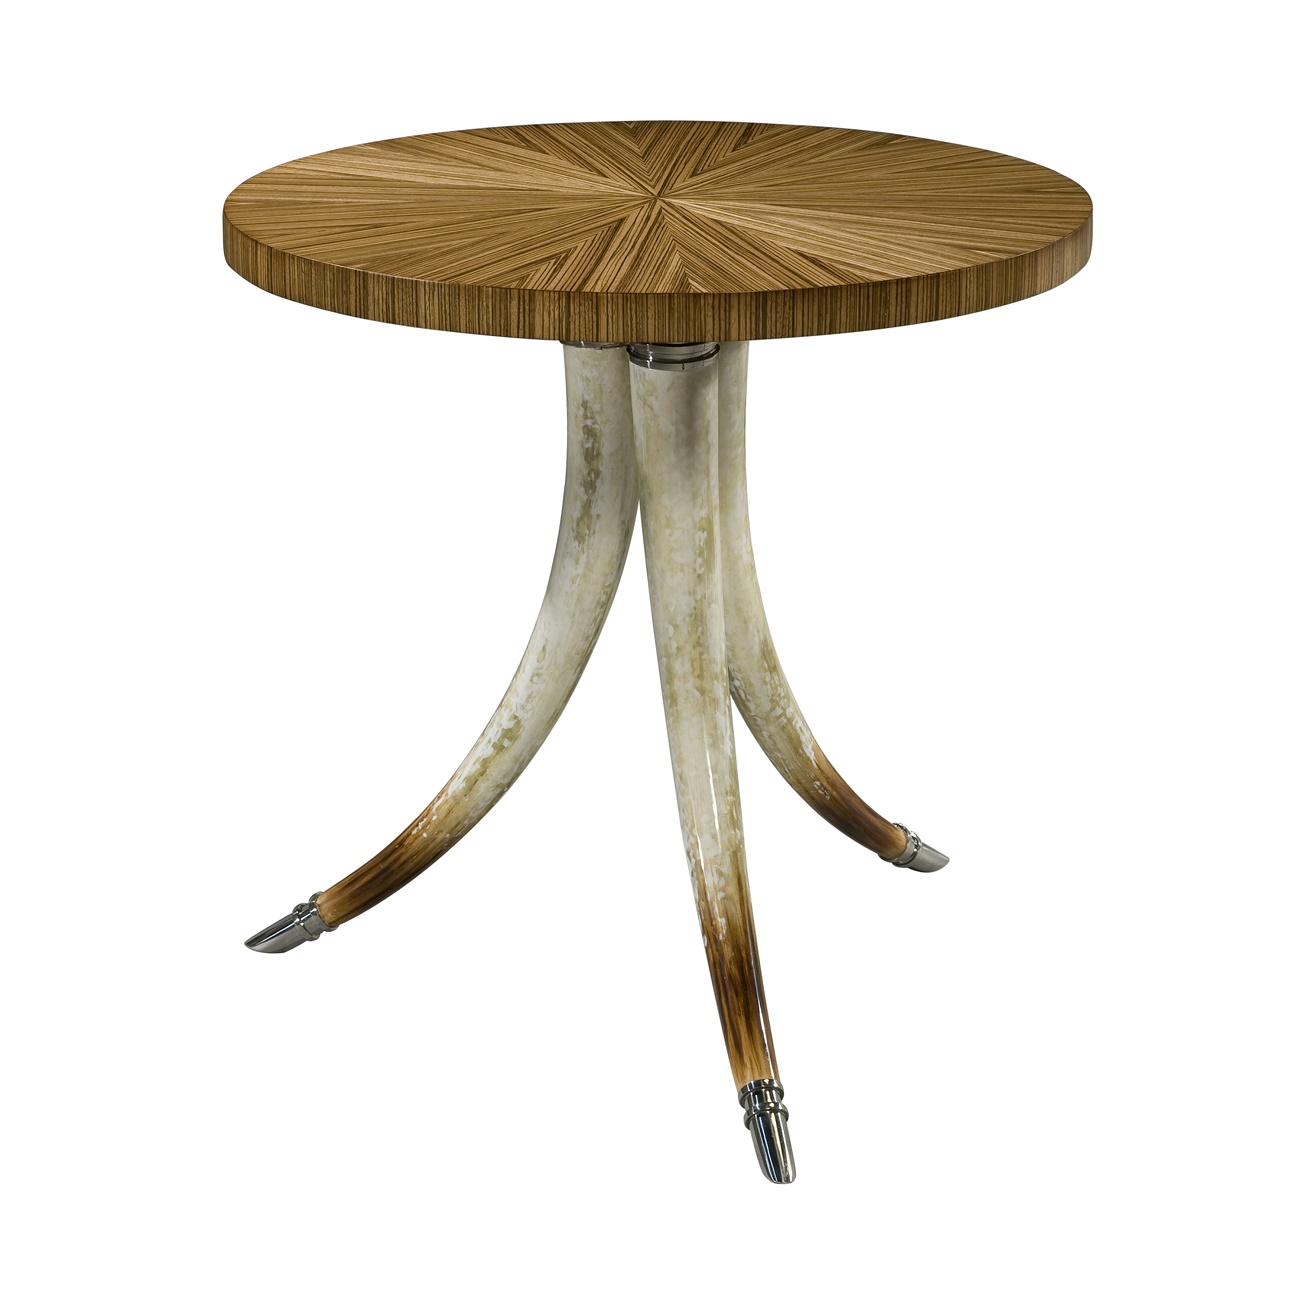 Torridon Accent Table, Theodore Alexander Table, Brooklyn, New York, Furniture by ABD